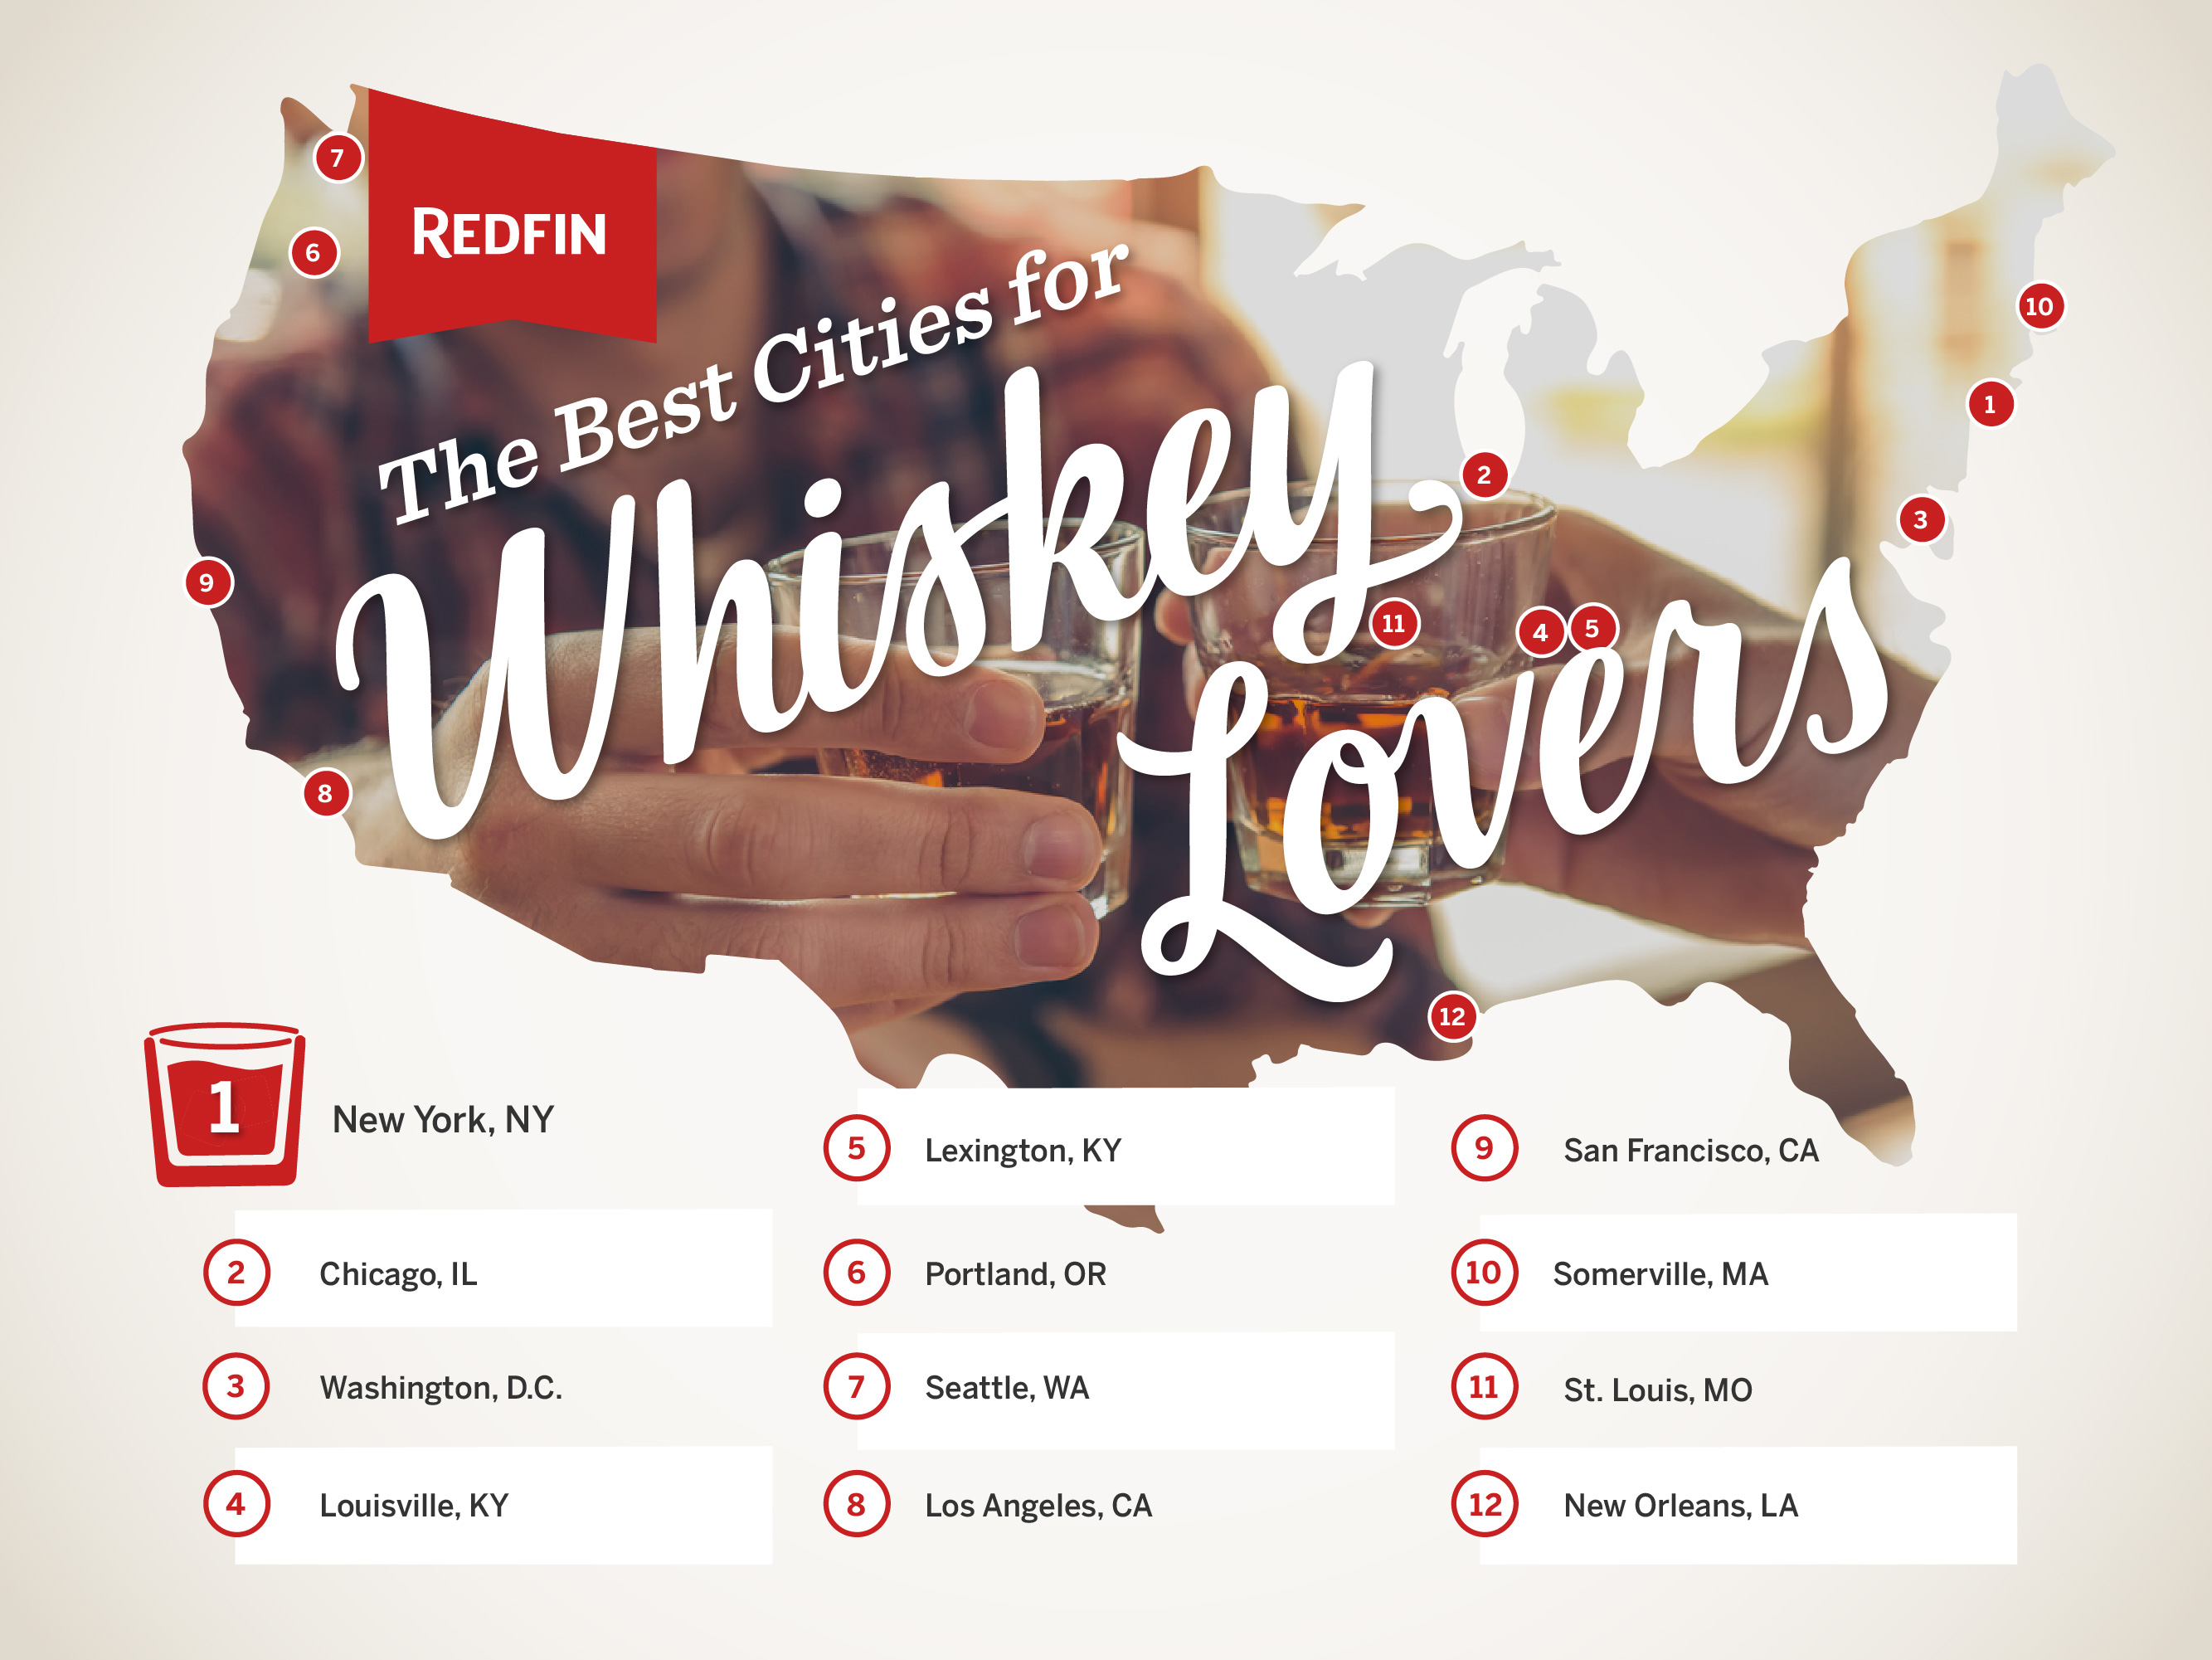 Best Cities for Whiskey